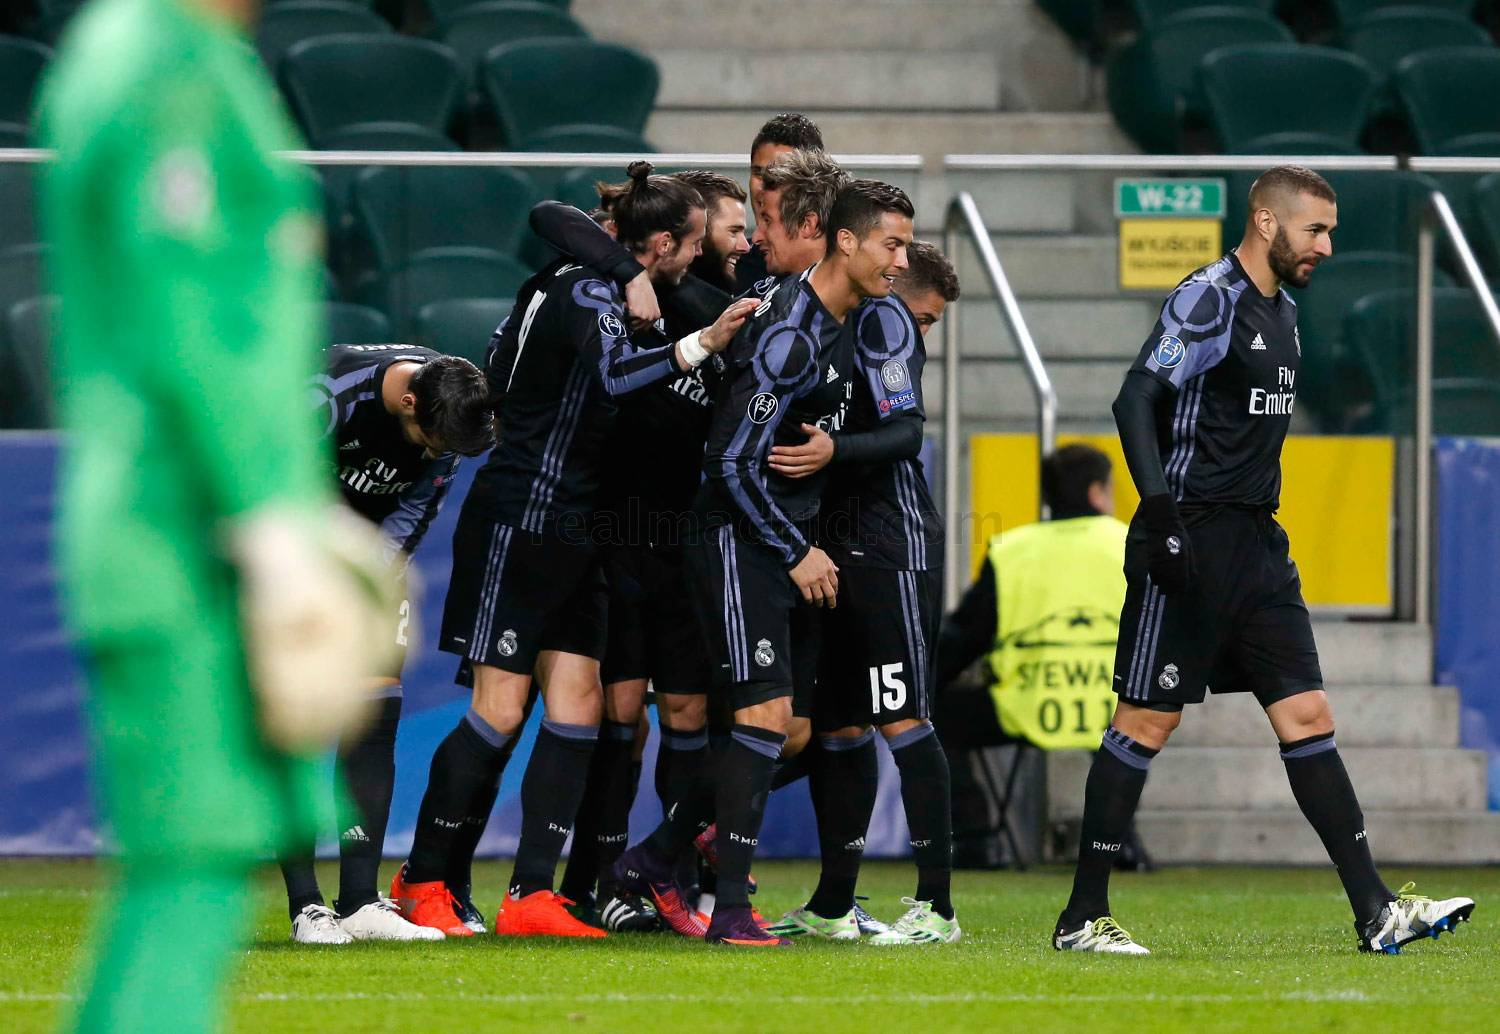 Real Madrid - Legia Varsovia - Real Madrid - 02-11-2016